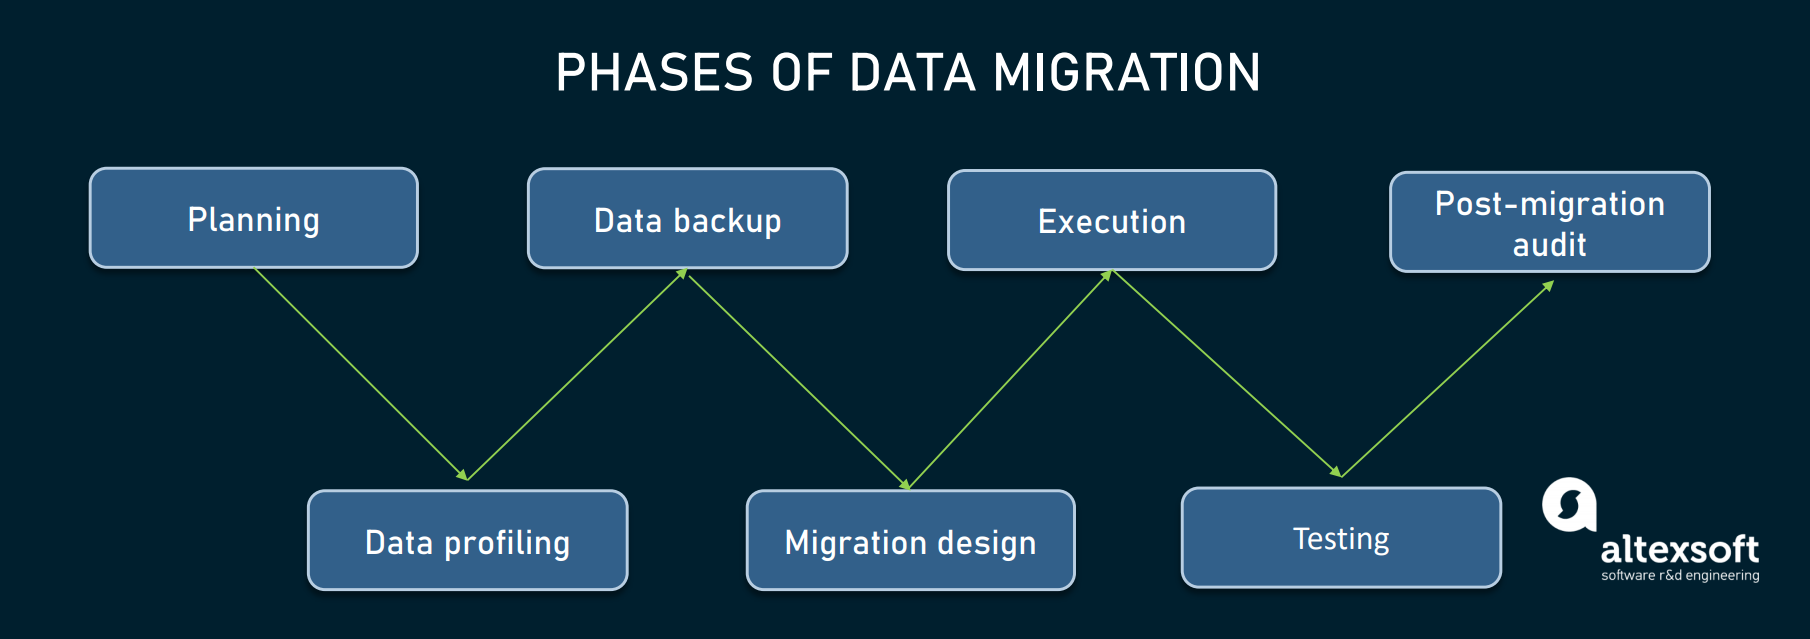 Phases of data migration